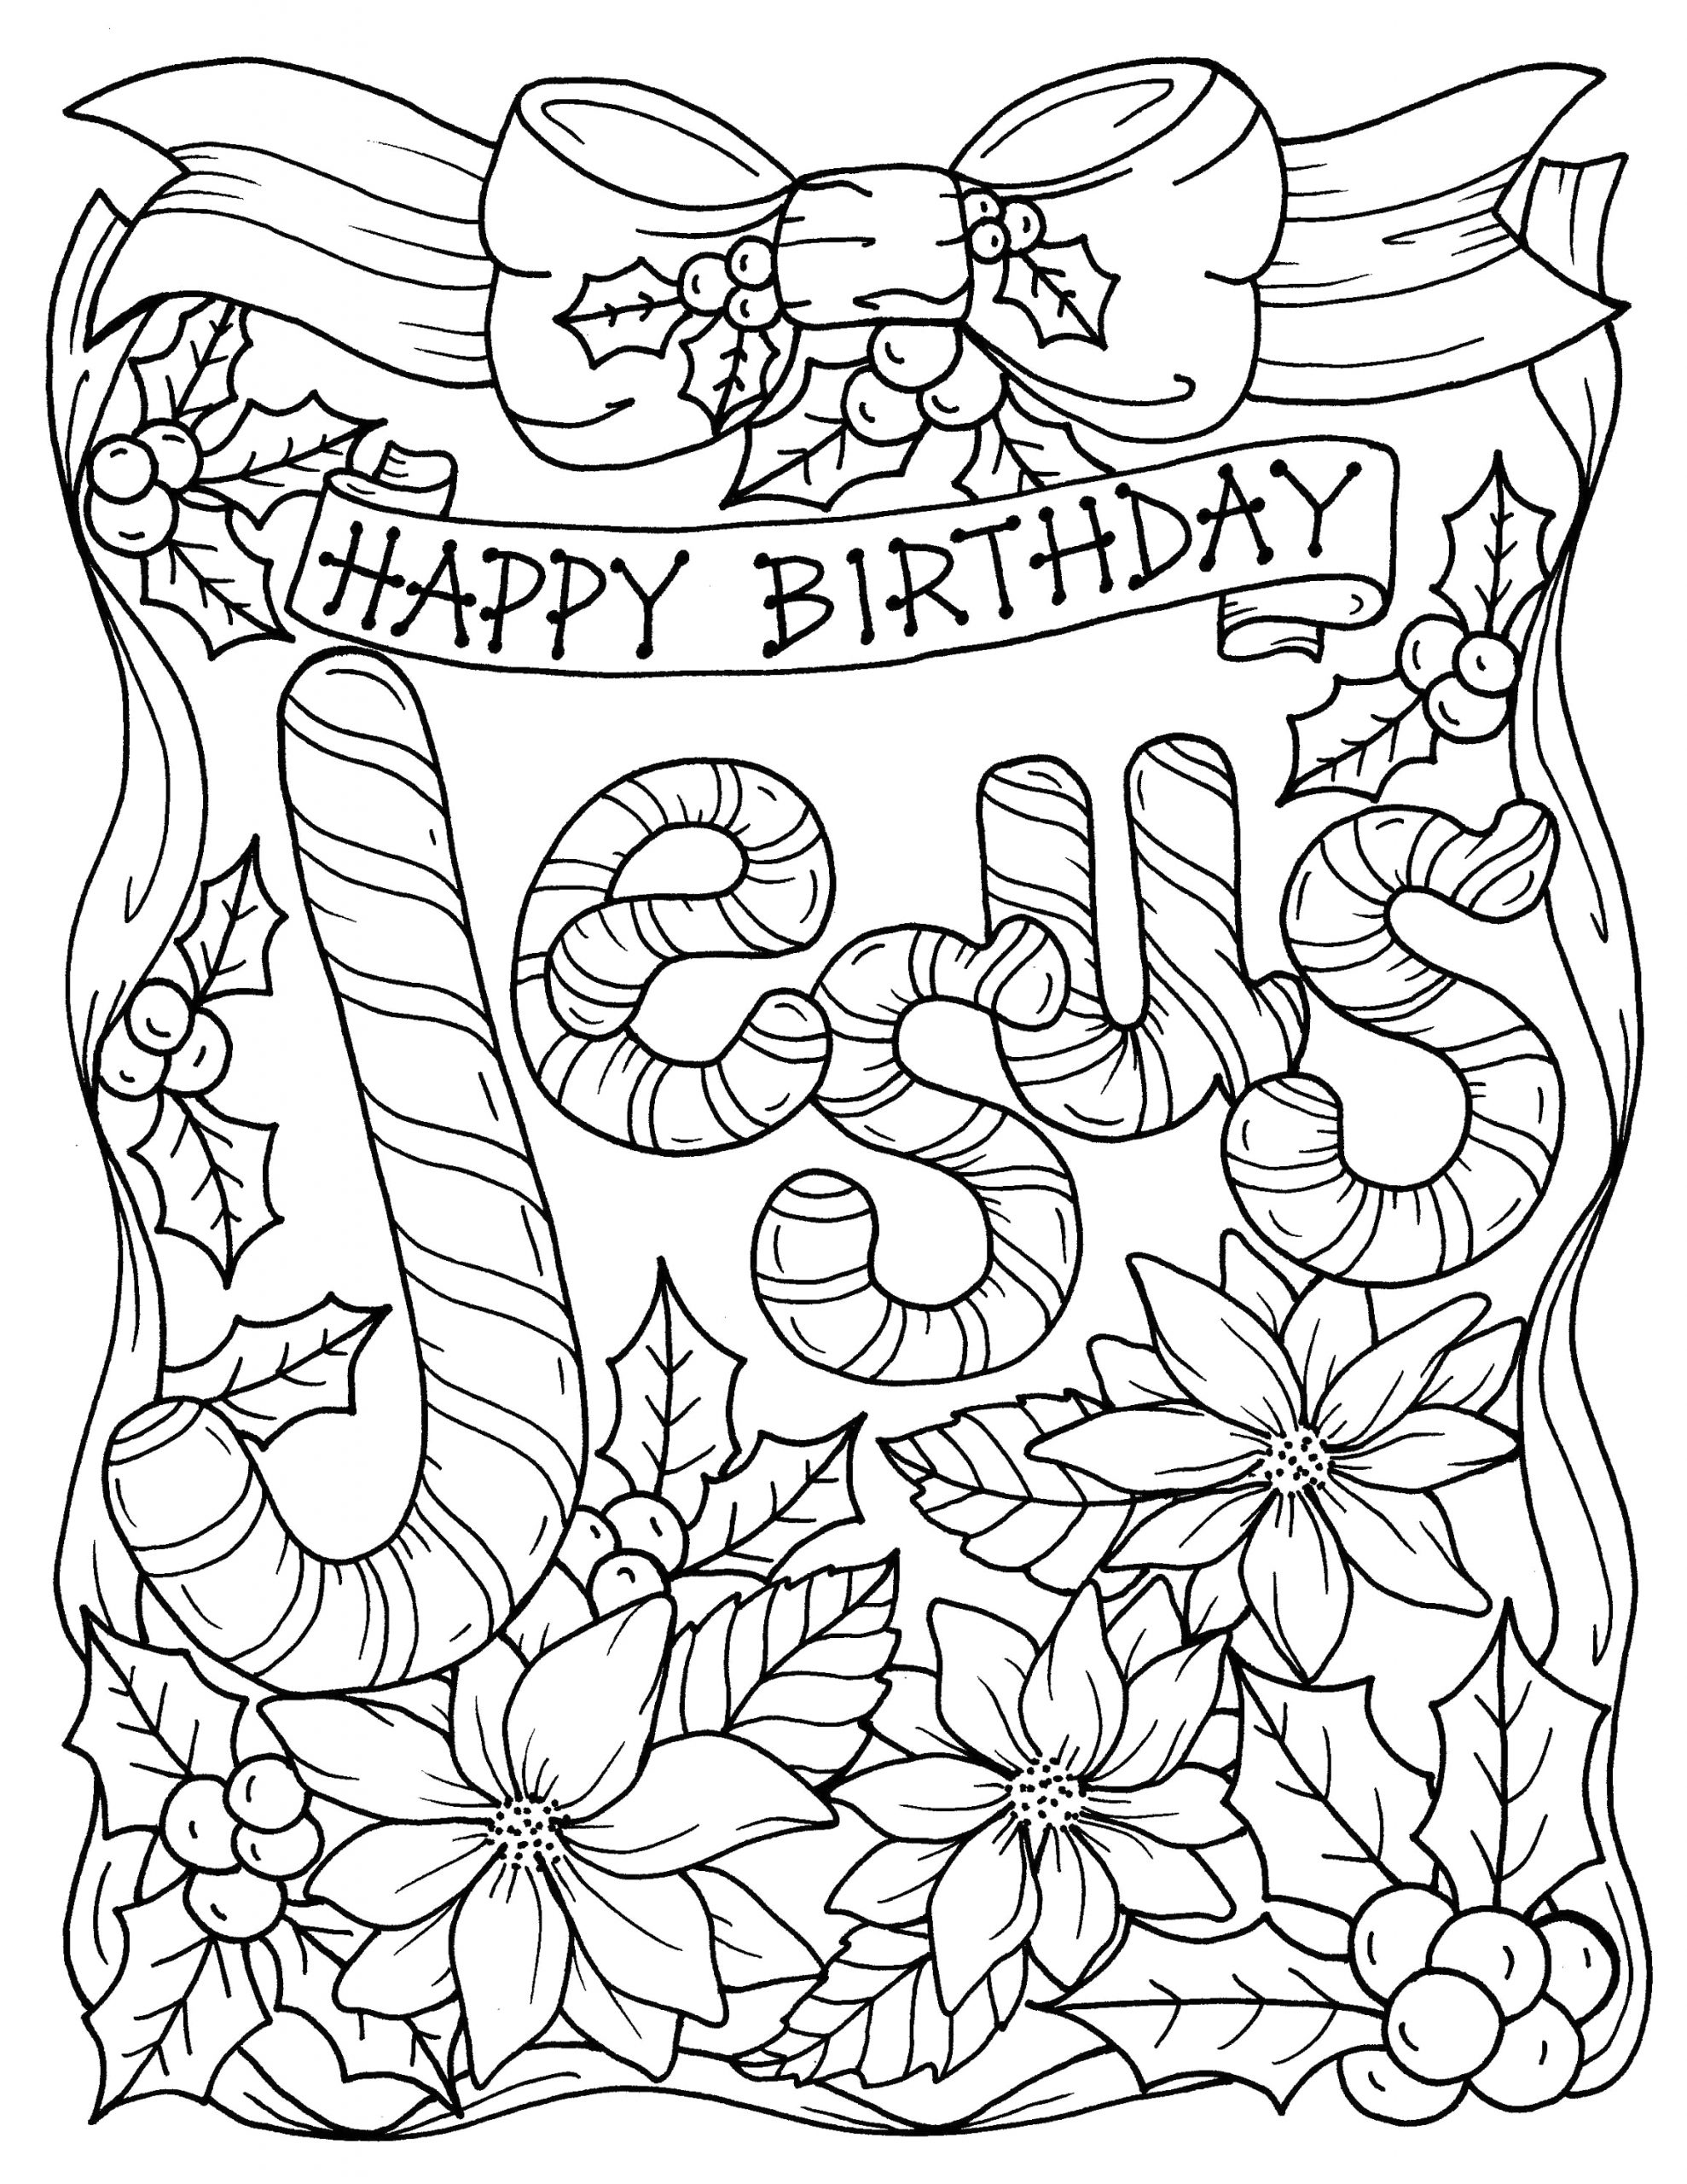 Free Religious Christmas Coloring Pages to Print Pin On Coloring Pages